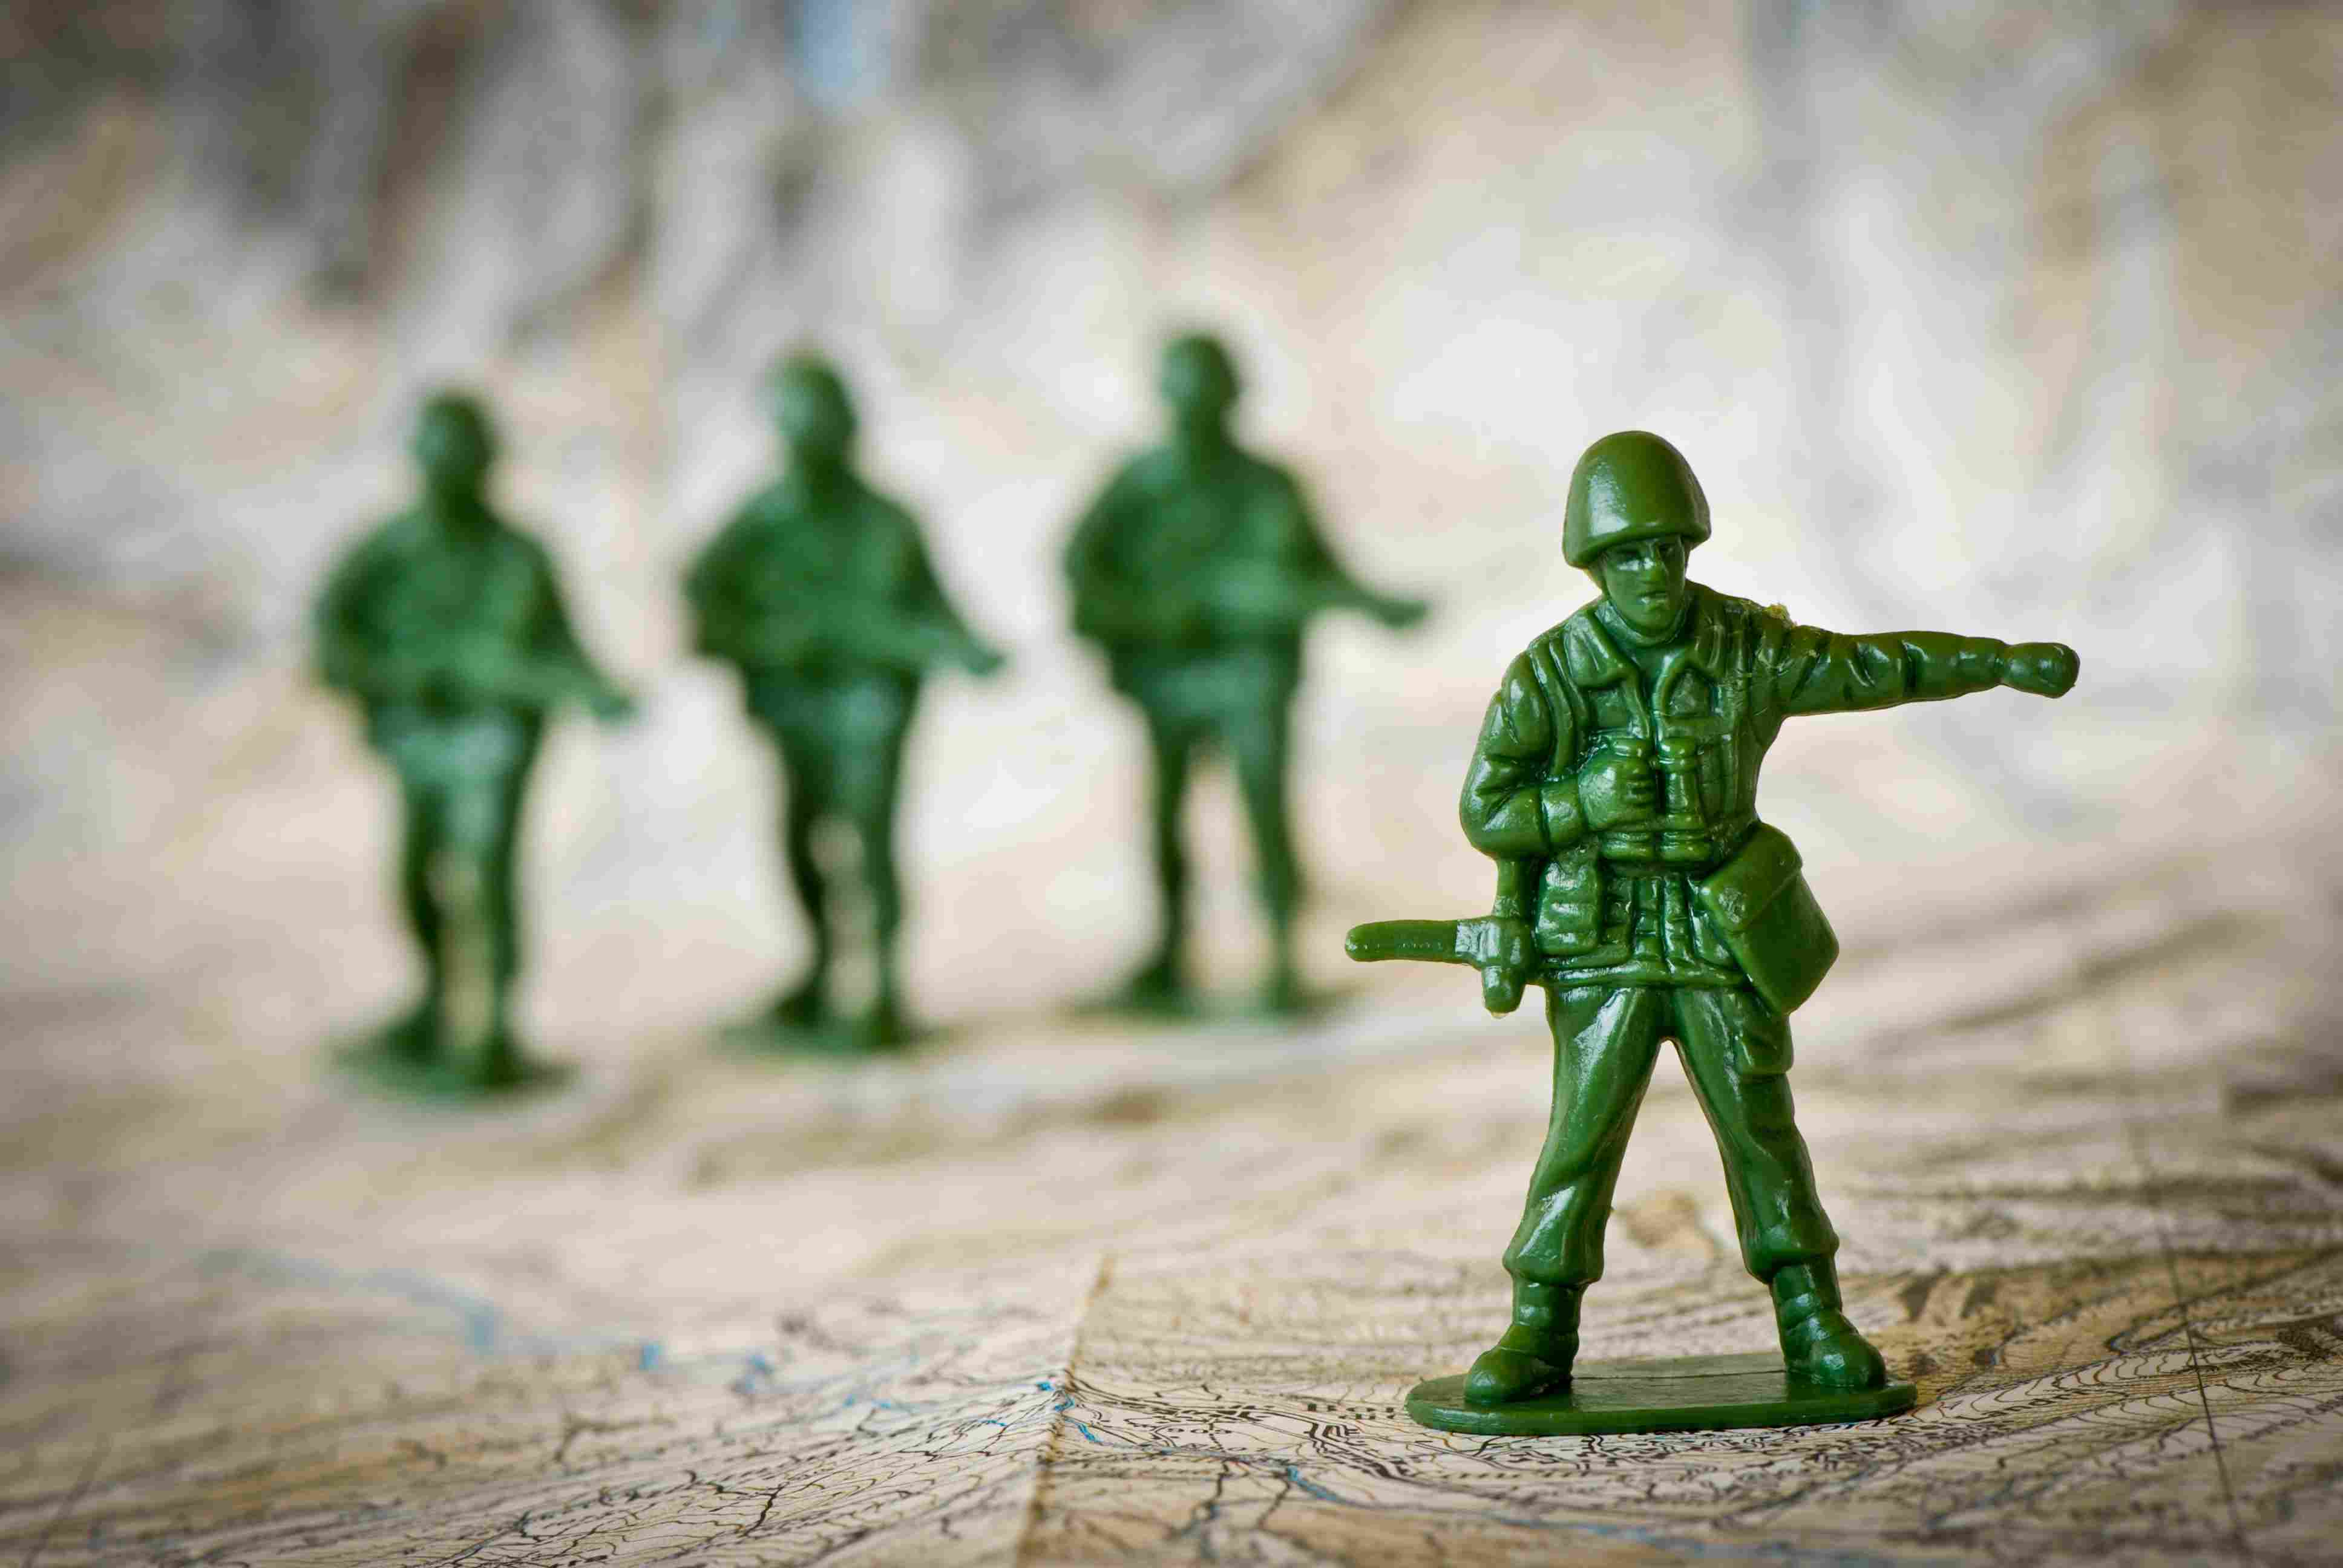 Toy soldiers war concepts